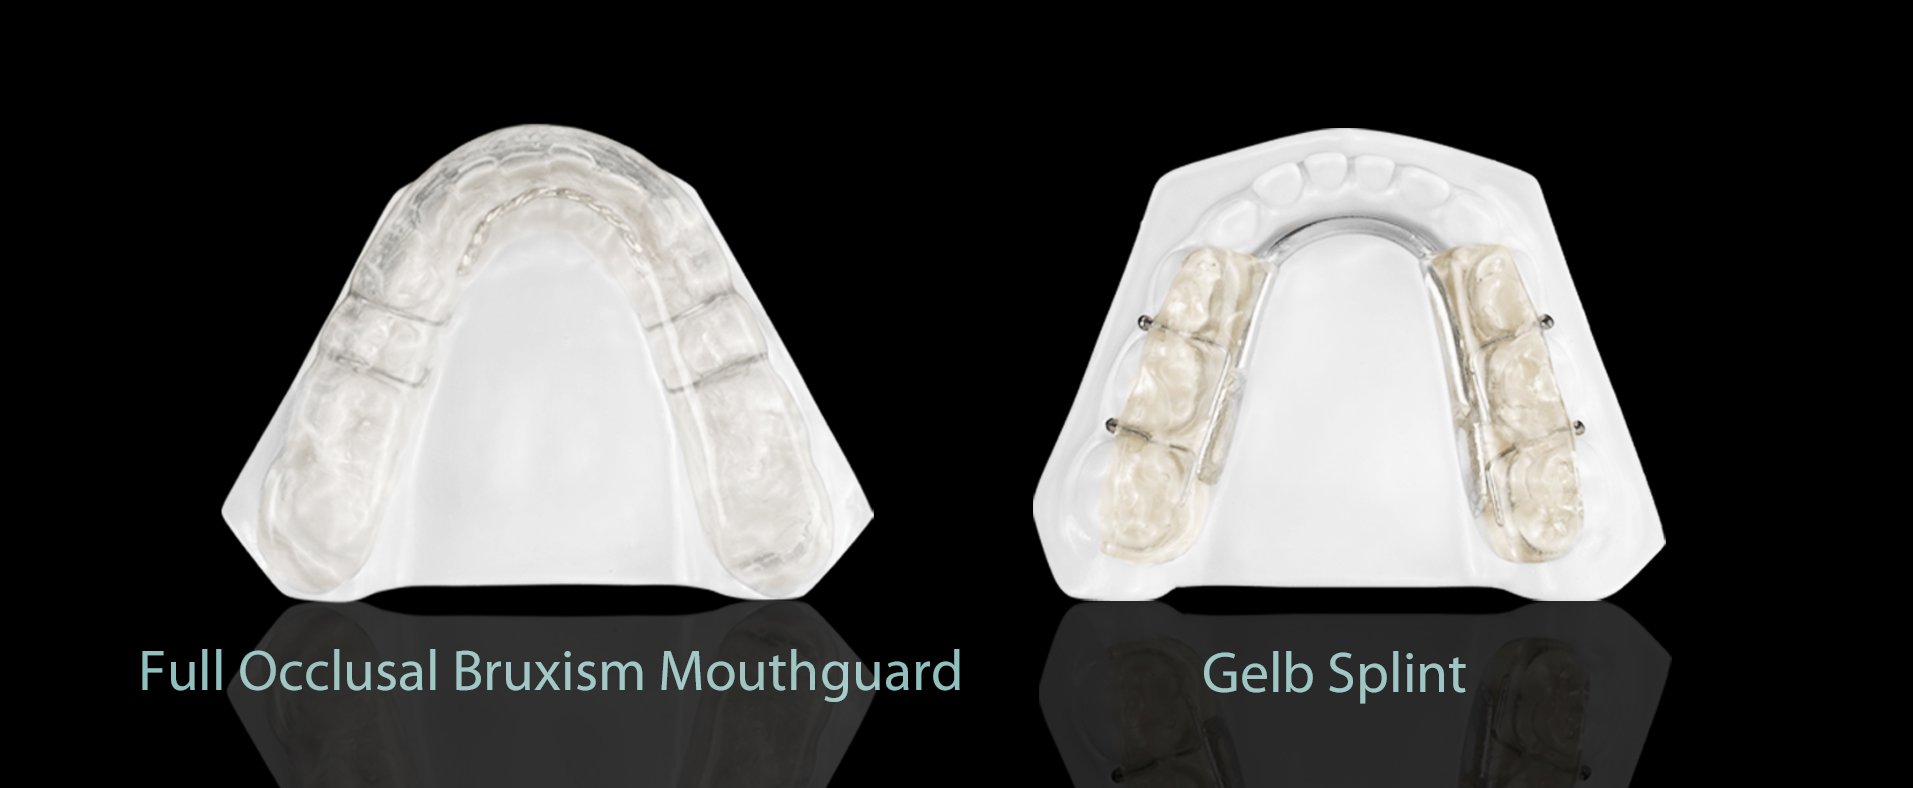 ORTHO-TMJ-SPLINTS-HEADER-IMAGE